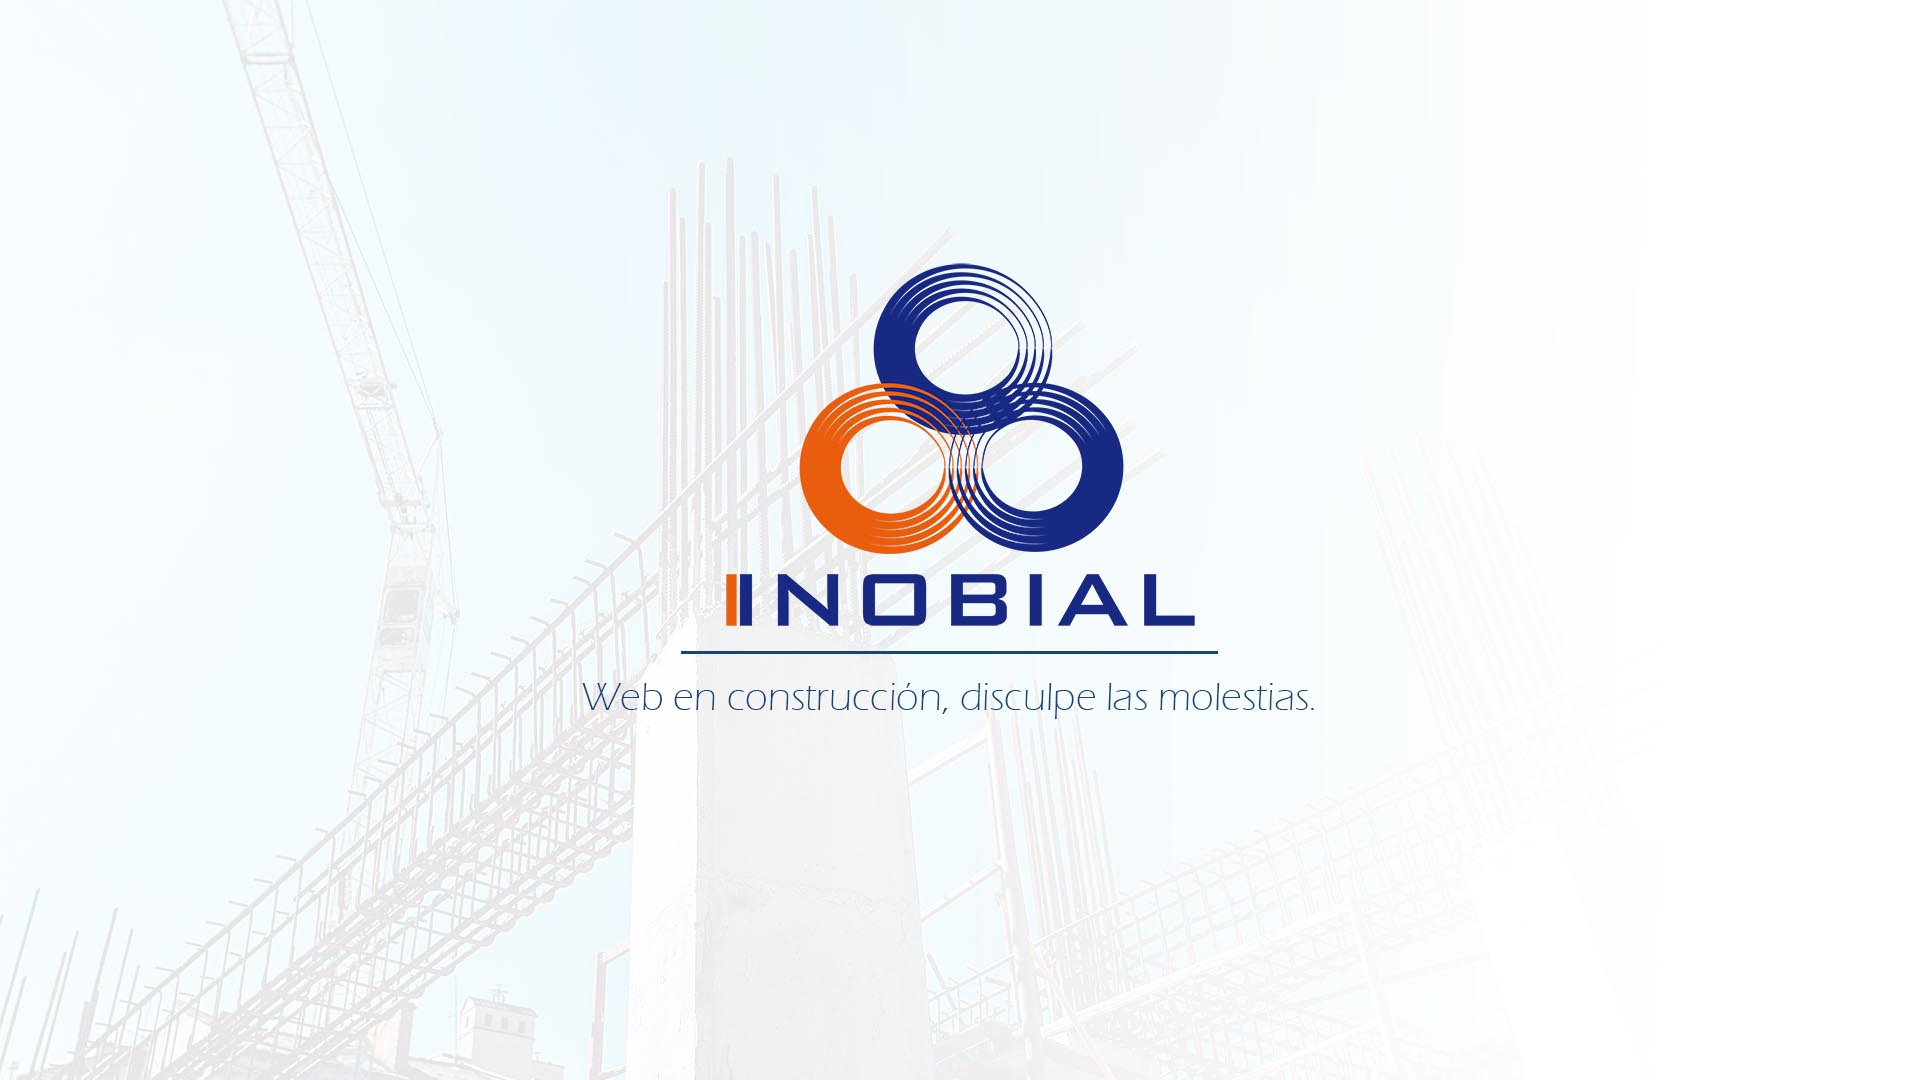 Web en construccion INOBIAL